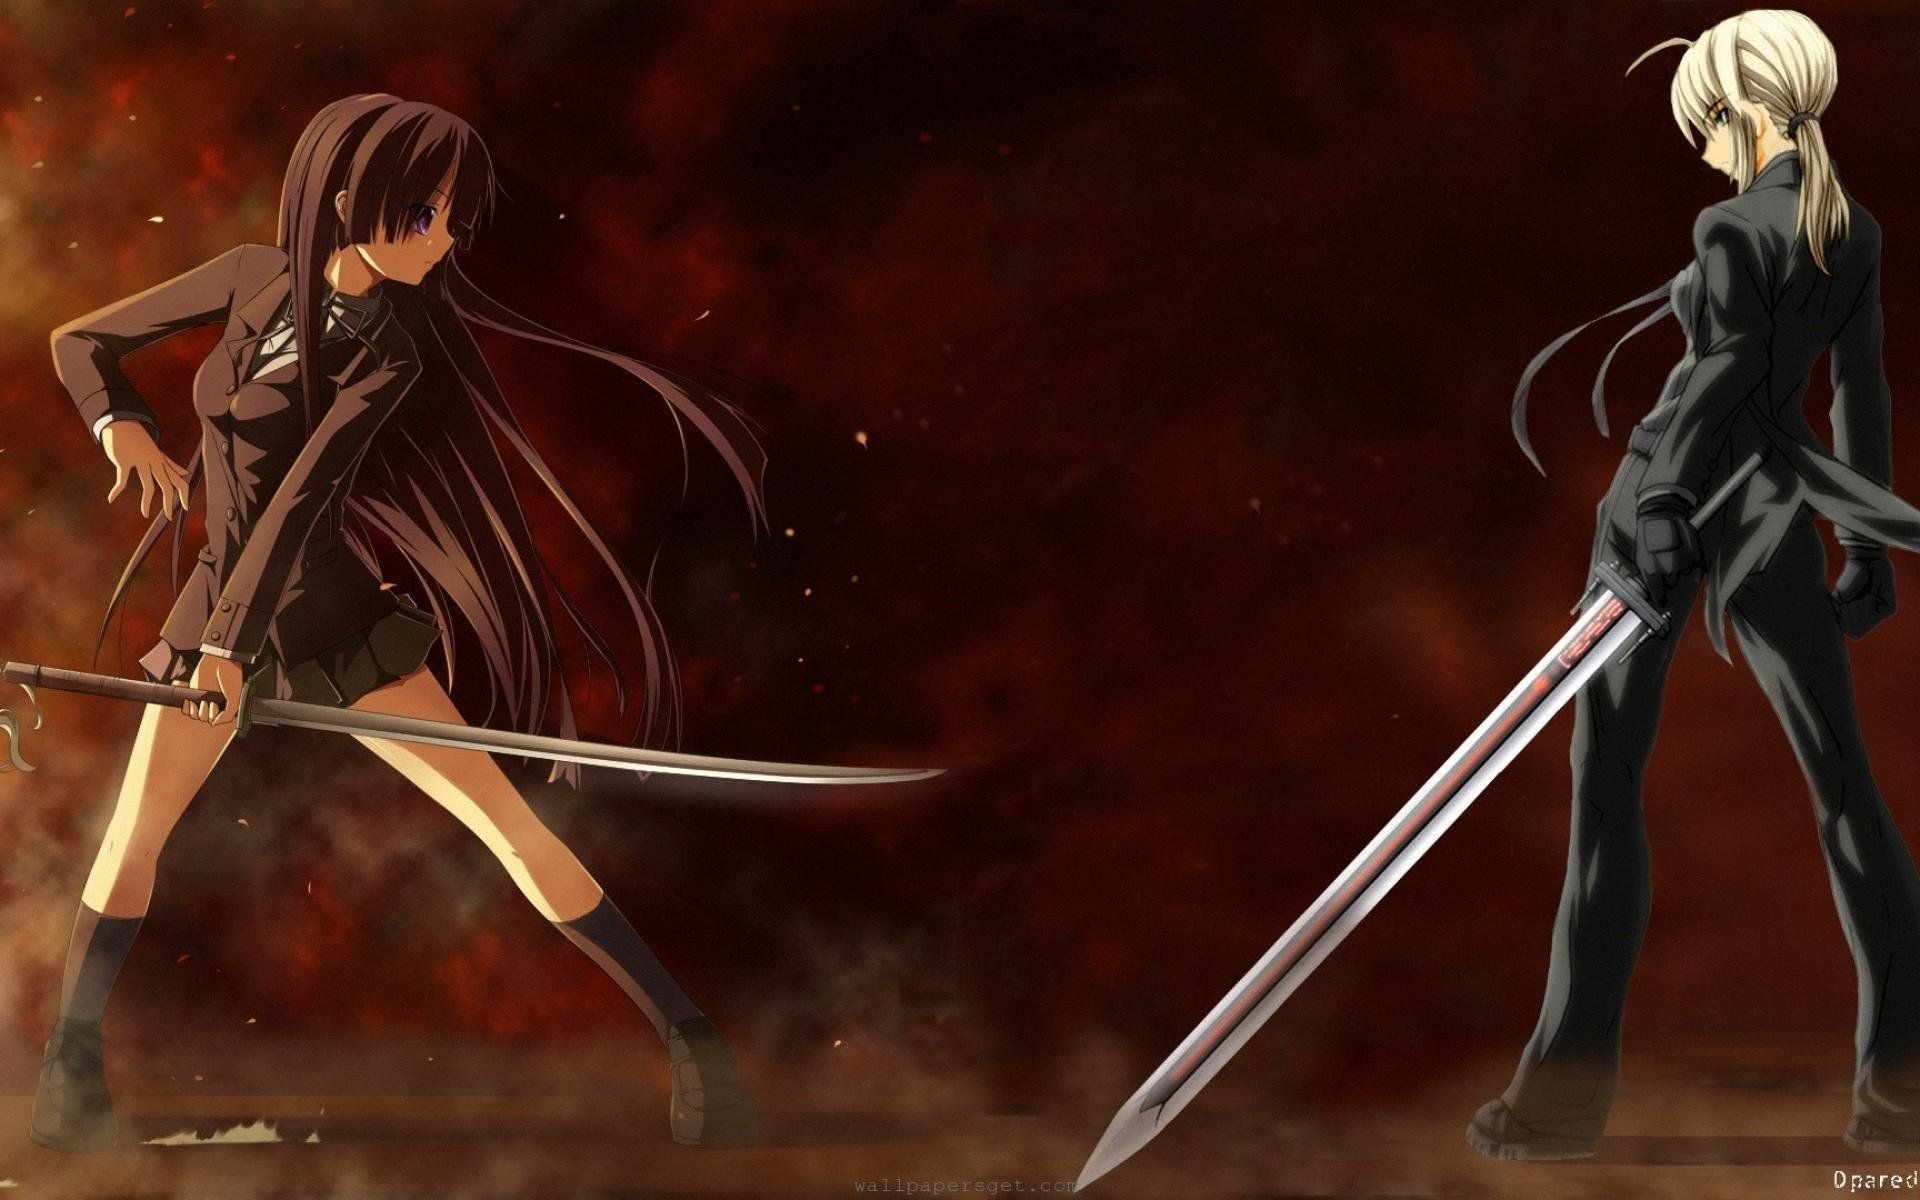 Res: 1920x1200, Anime Girl Fighting - WallDevil